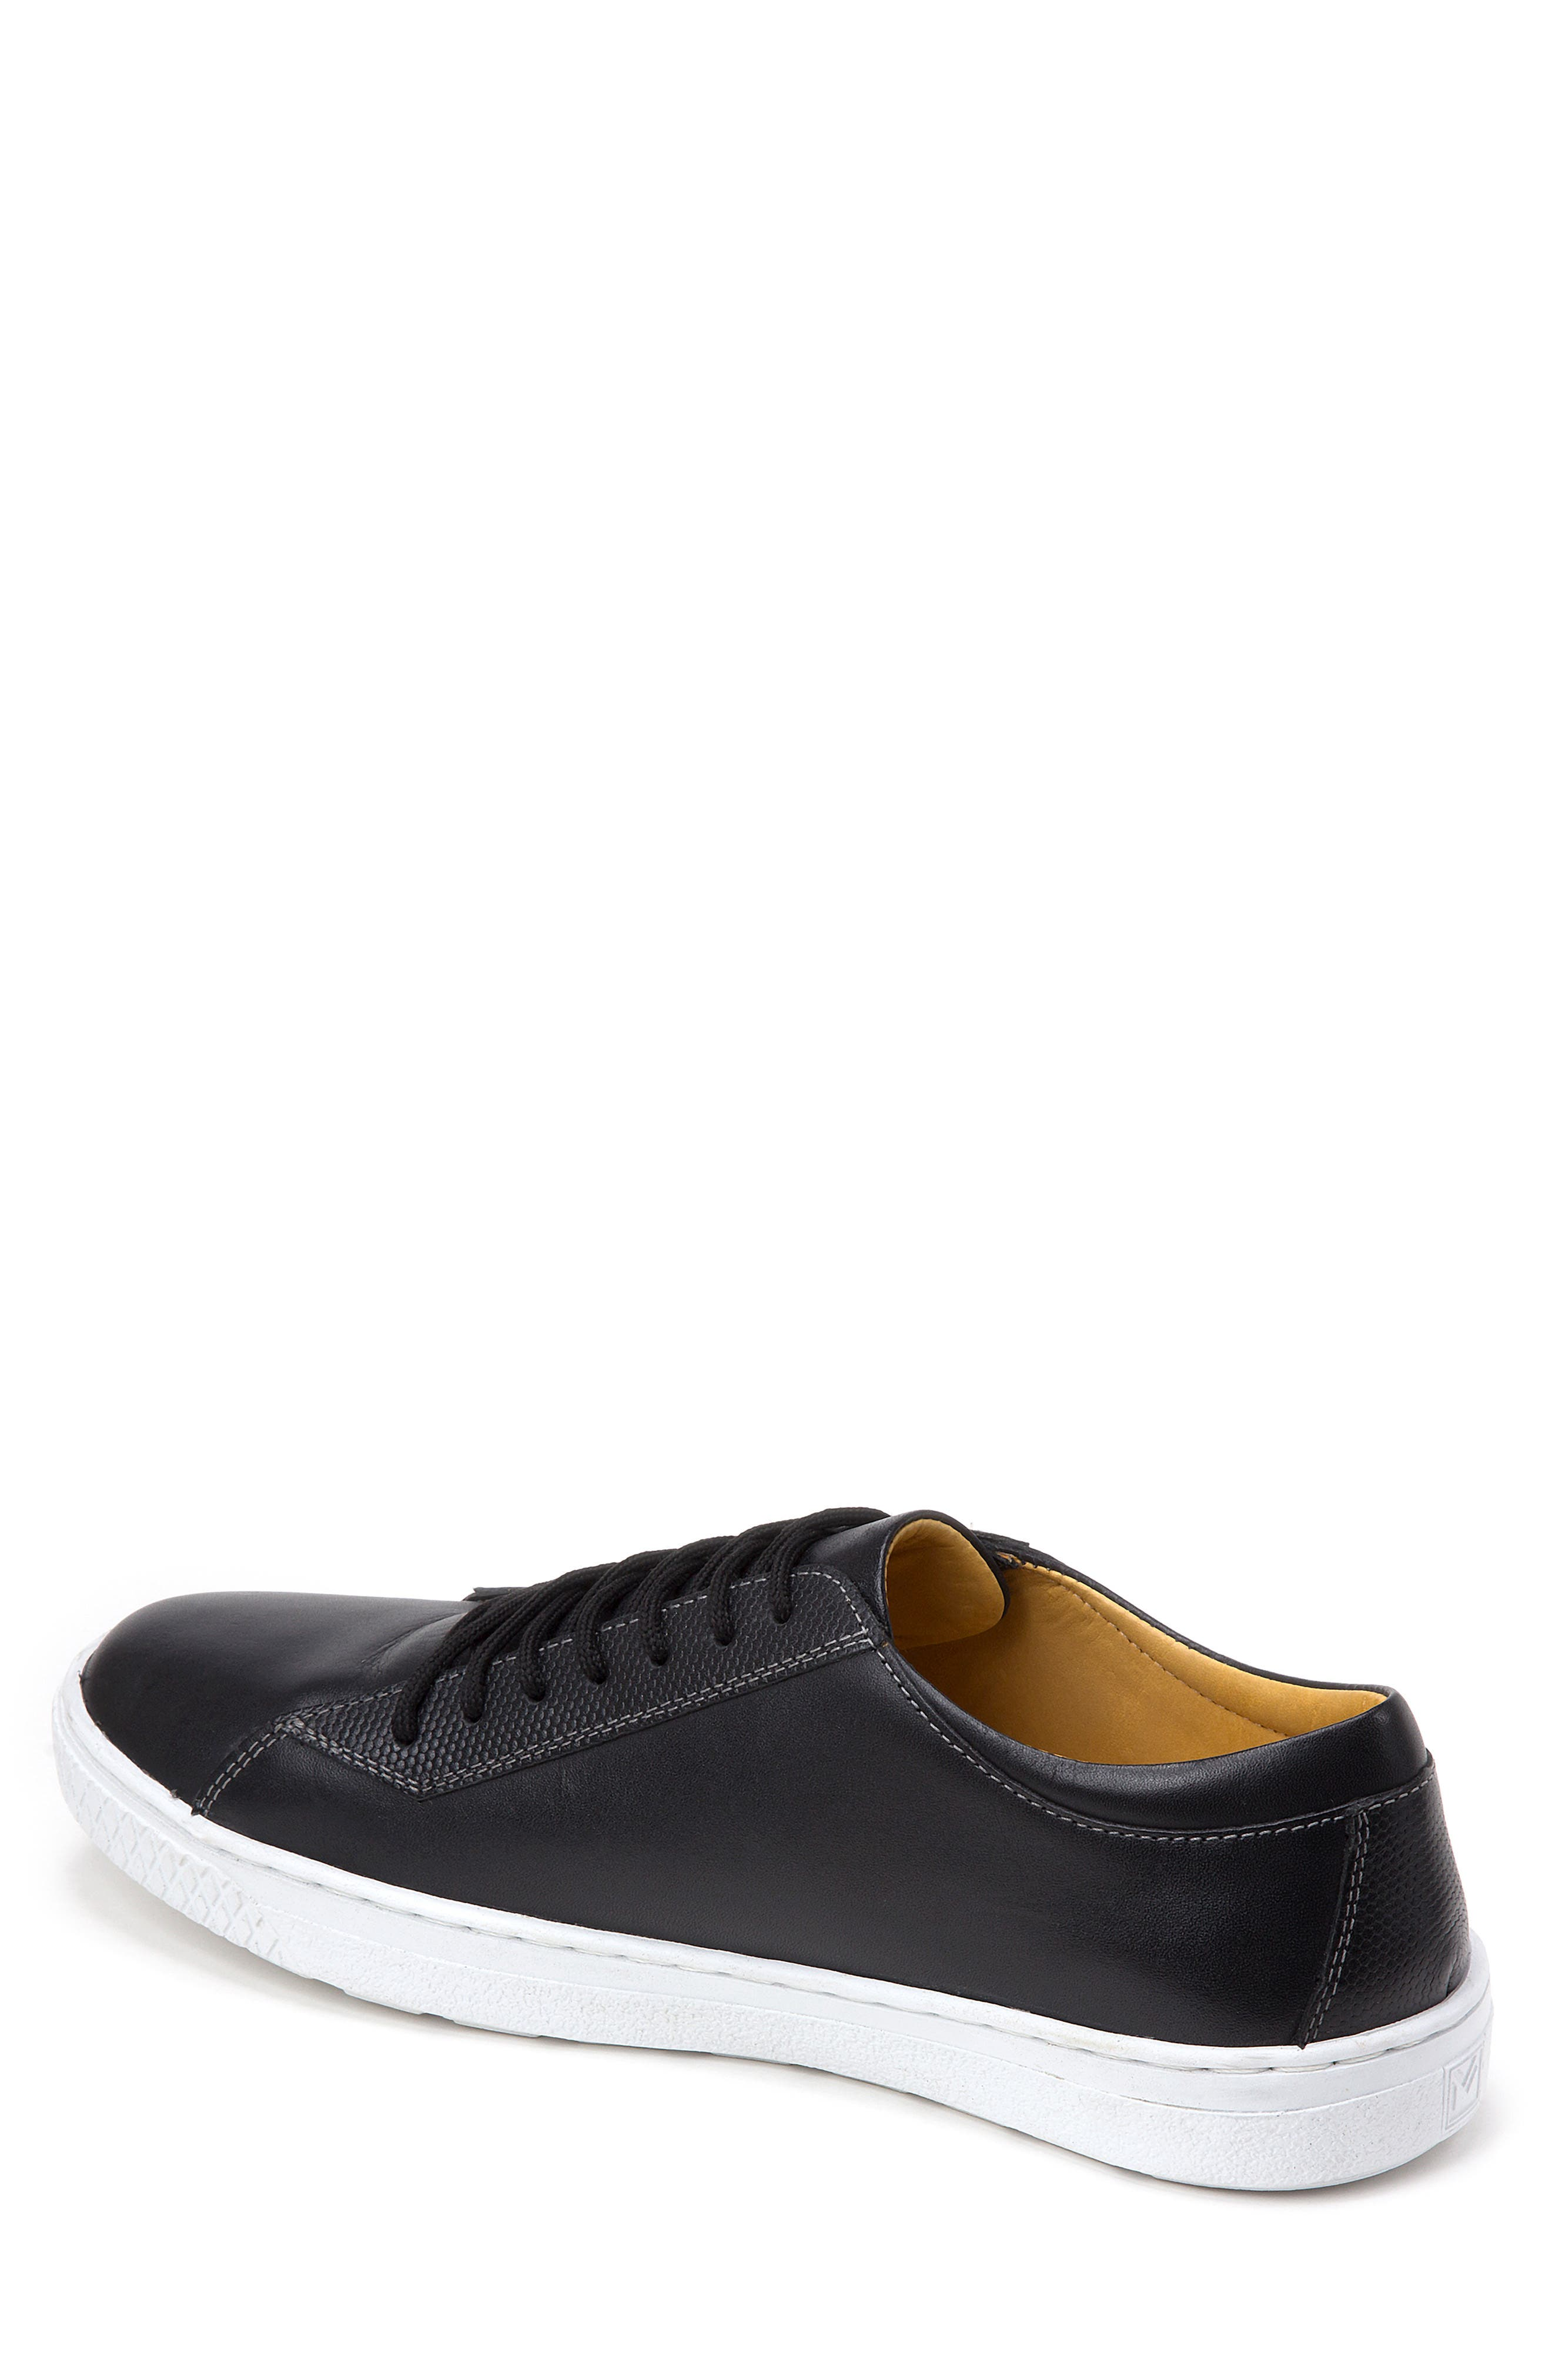 Minh Low Top Sneaker,                             Alternate thumbnail 2, color,                             BLACK LEATHER